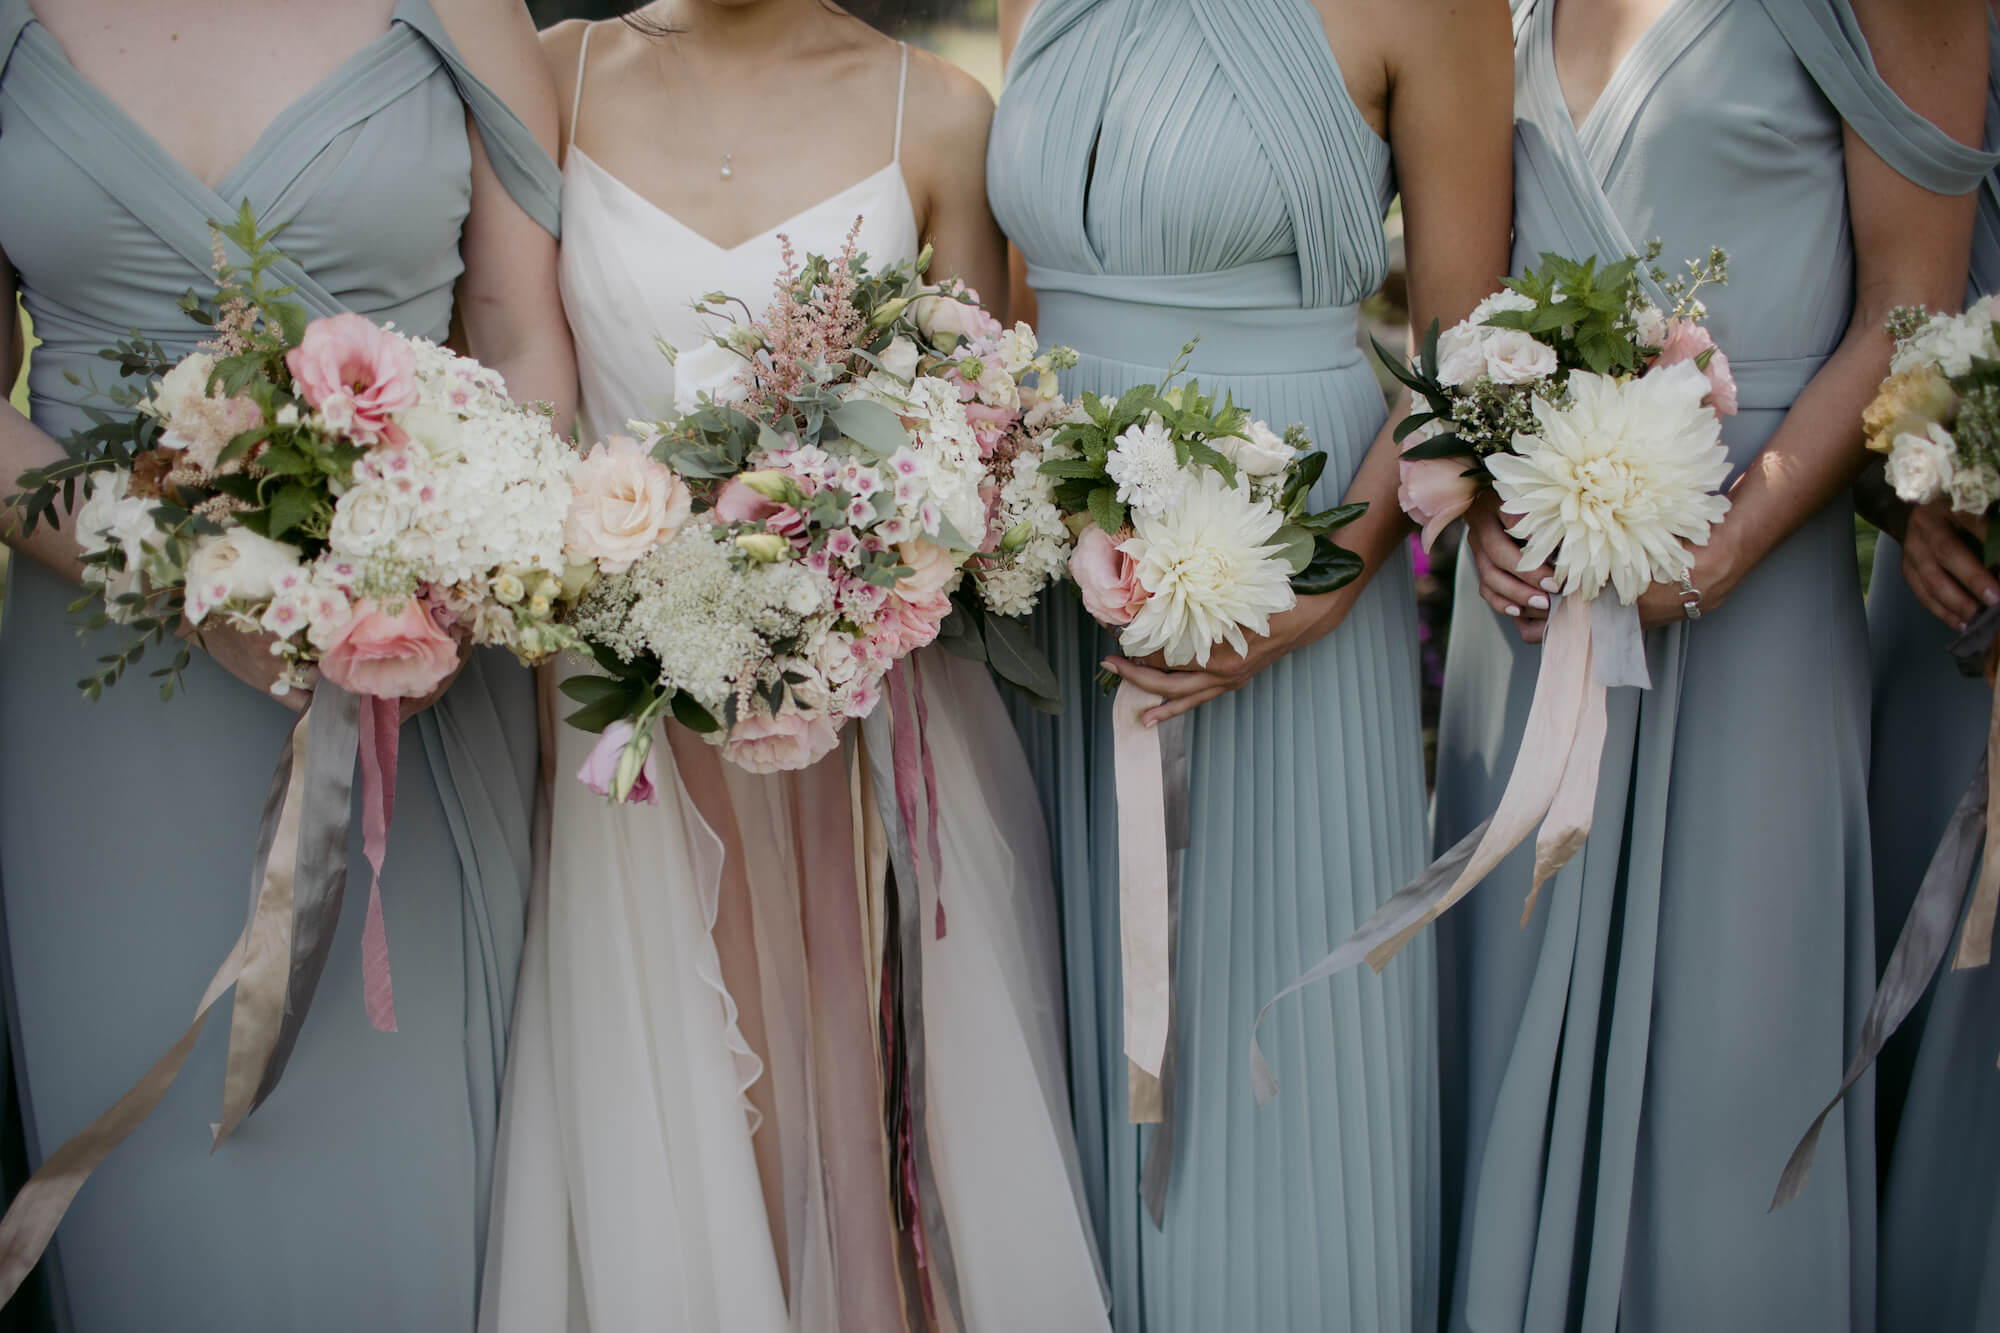 pale-blue-bridesmaid-dresses-pink-accents.jpg